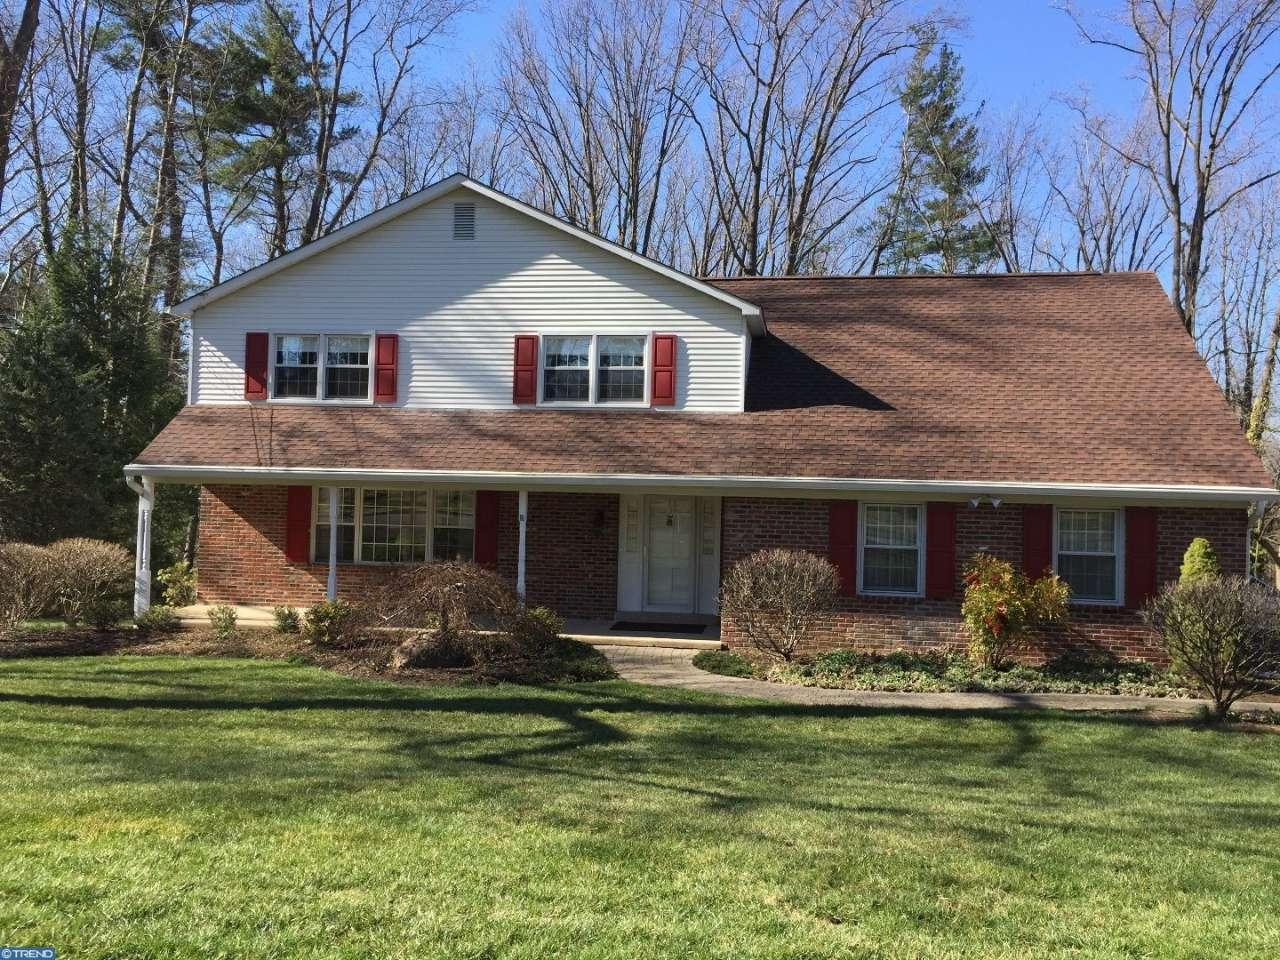 fort washington pa real estate houses for sale in bucks county